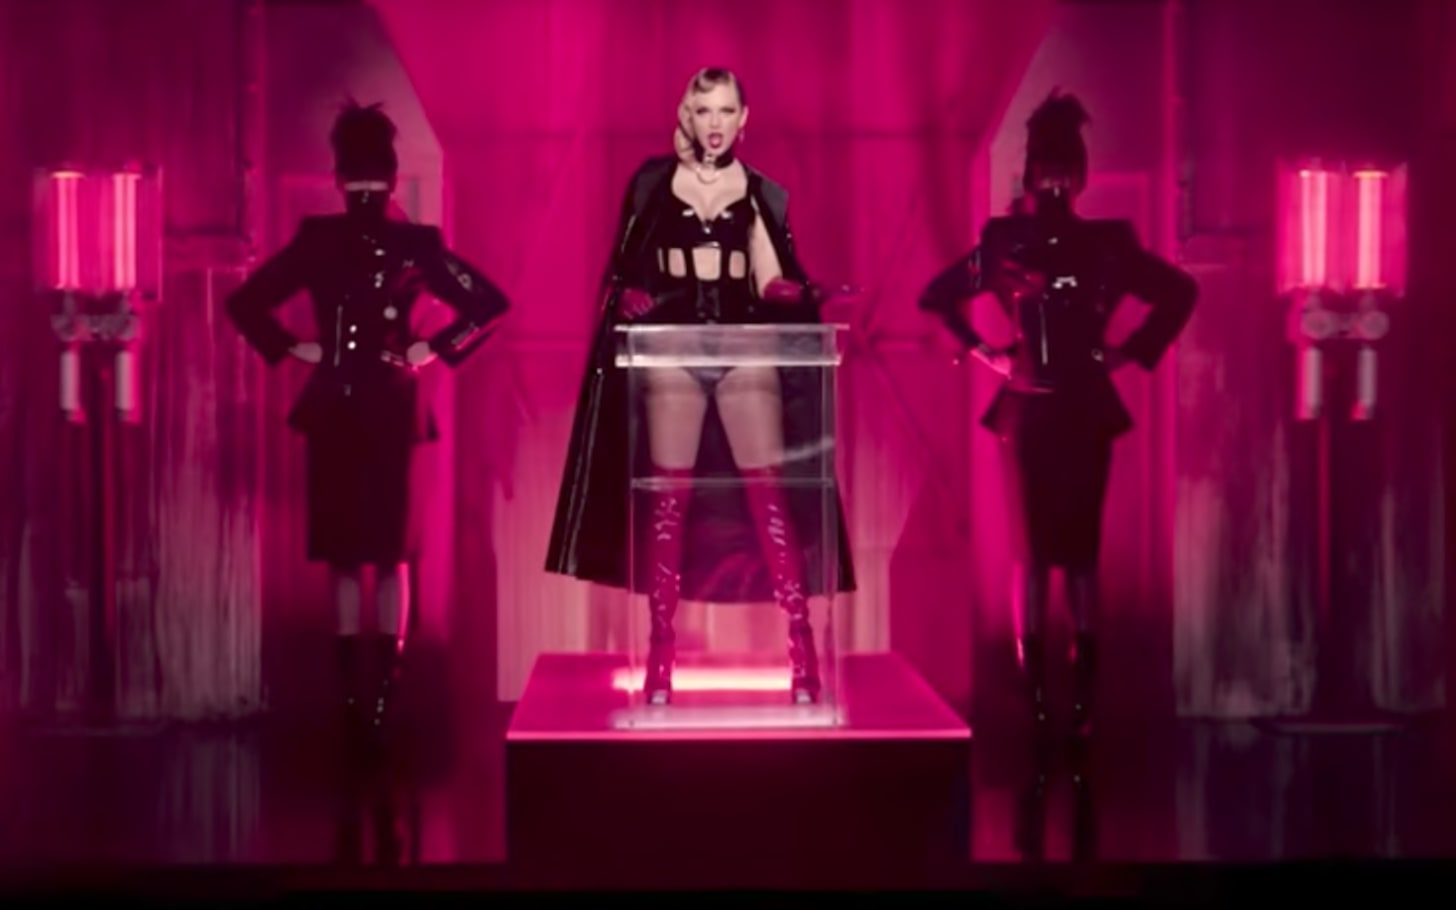 Taylor Swift's Look What You Made Me Do video: all the references ...